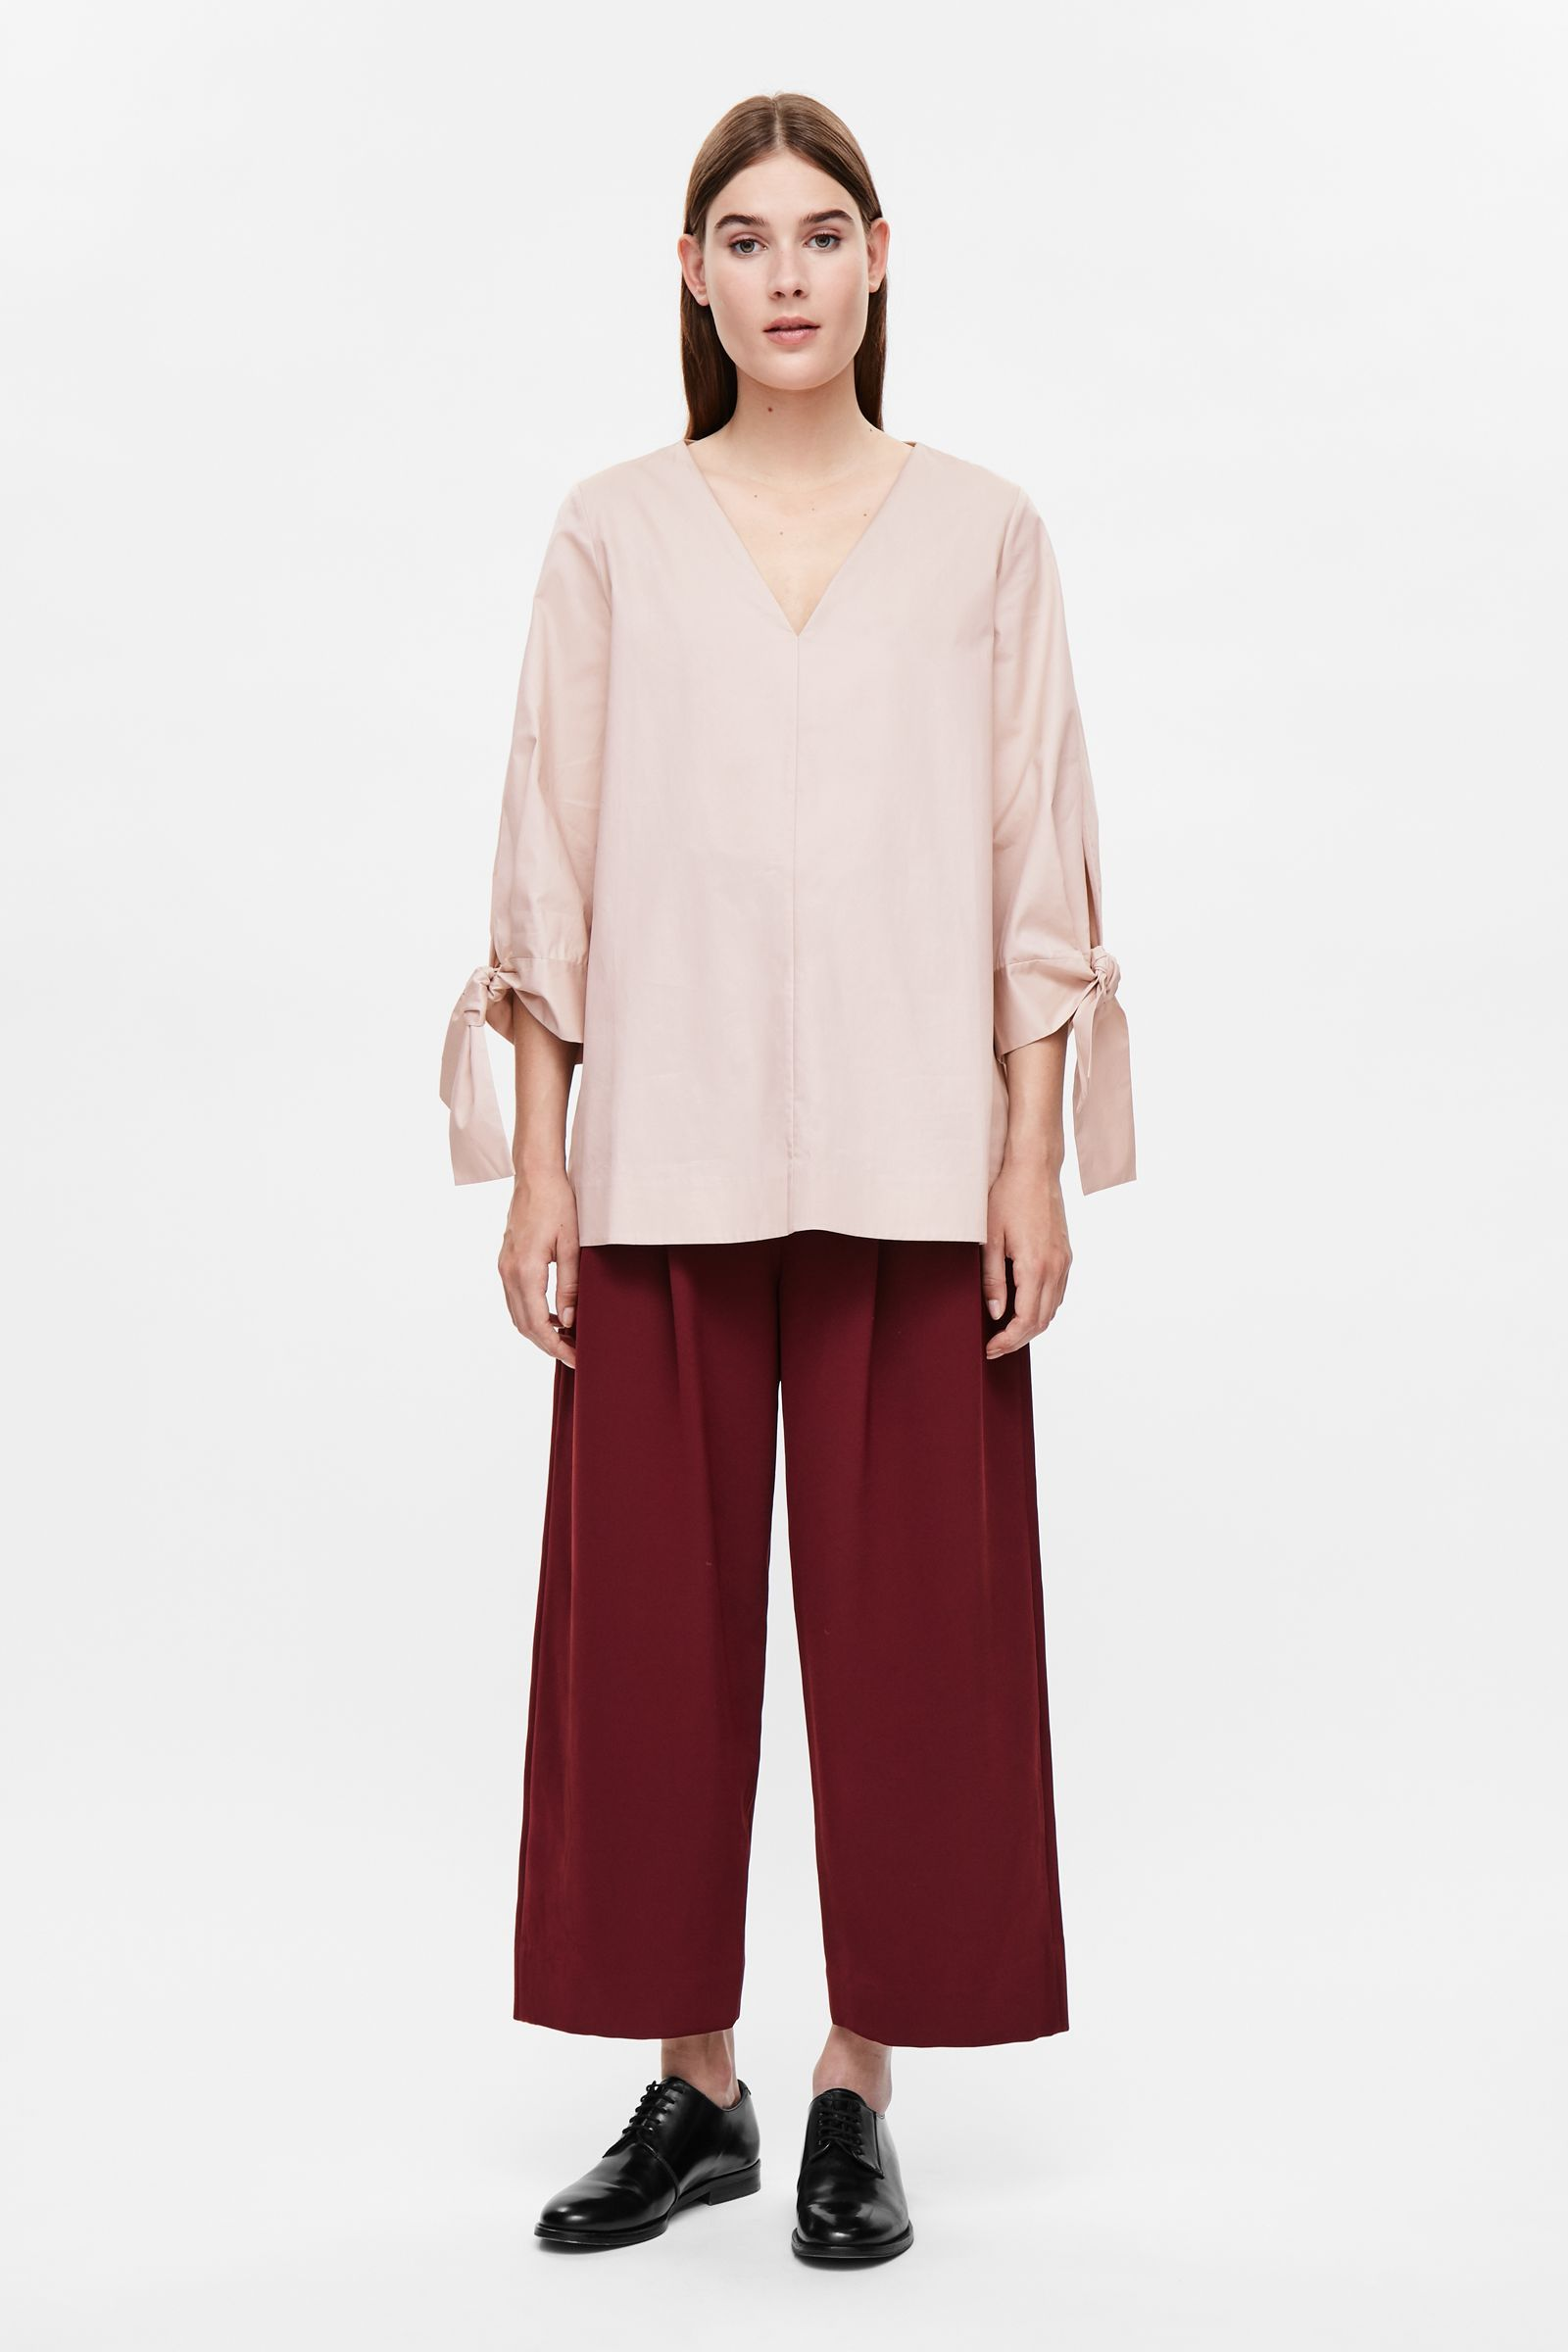 This loose-fit top is made from soft cotton poplin with oversized tie cuffs and split sides. An A-line fit, it has a deep v-neckline, 3/4 sleeves and clean edges.